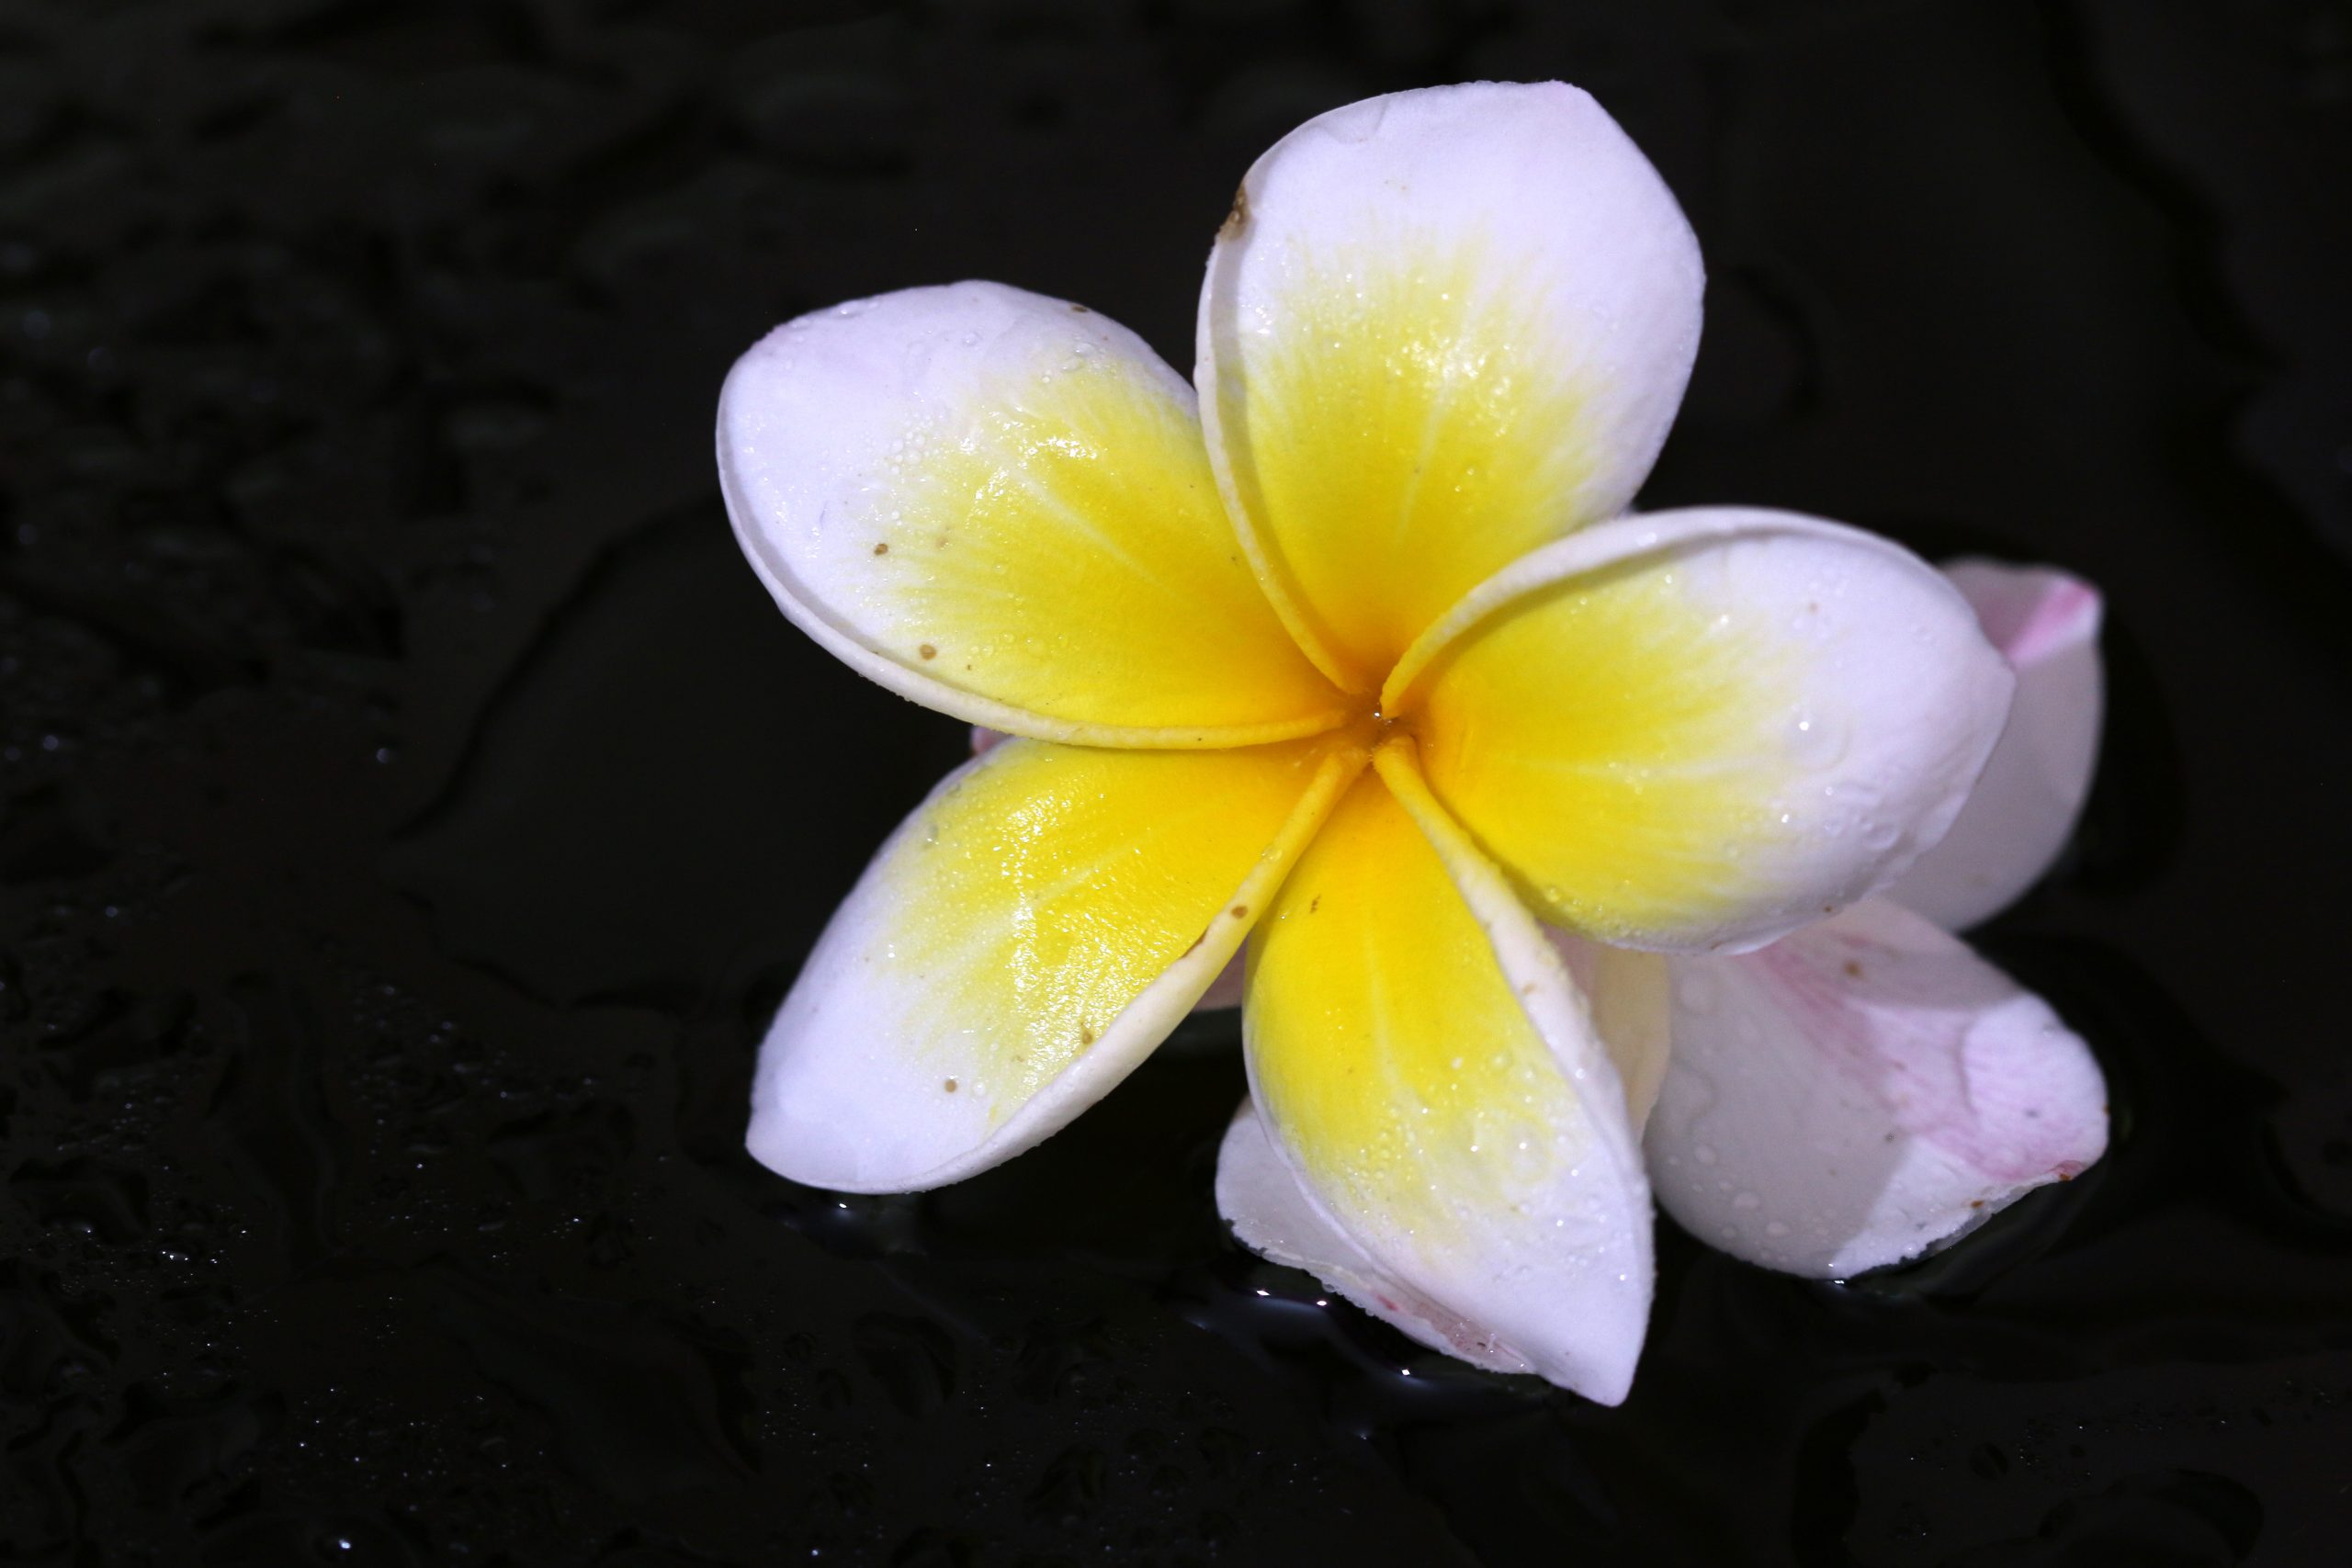 A white and yellow flower